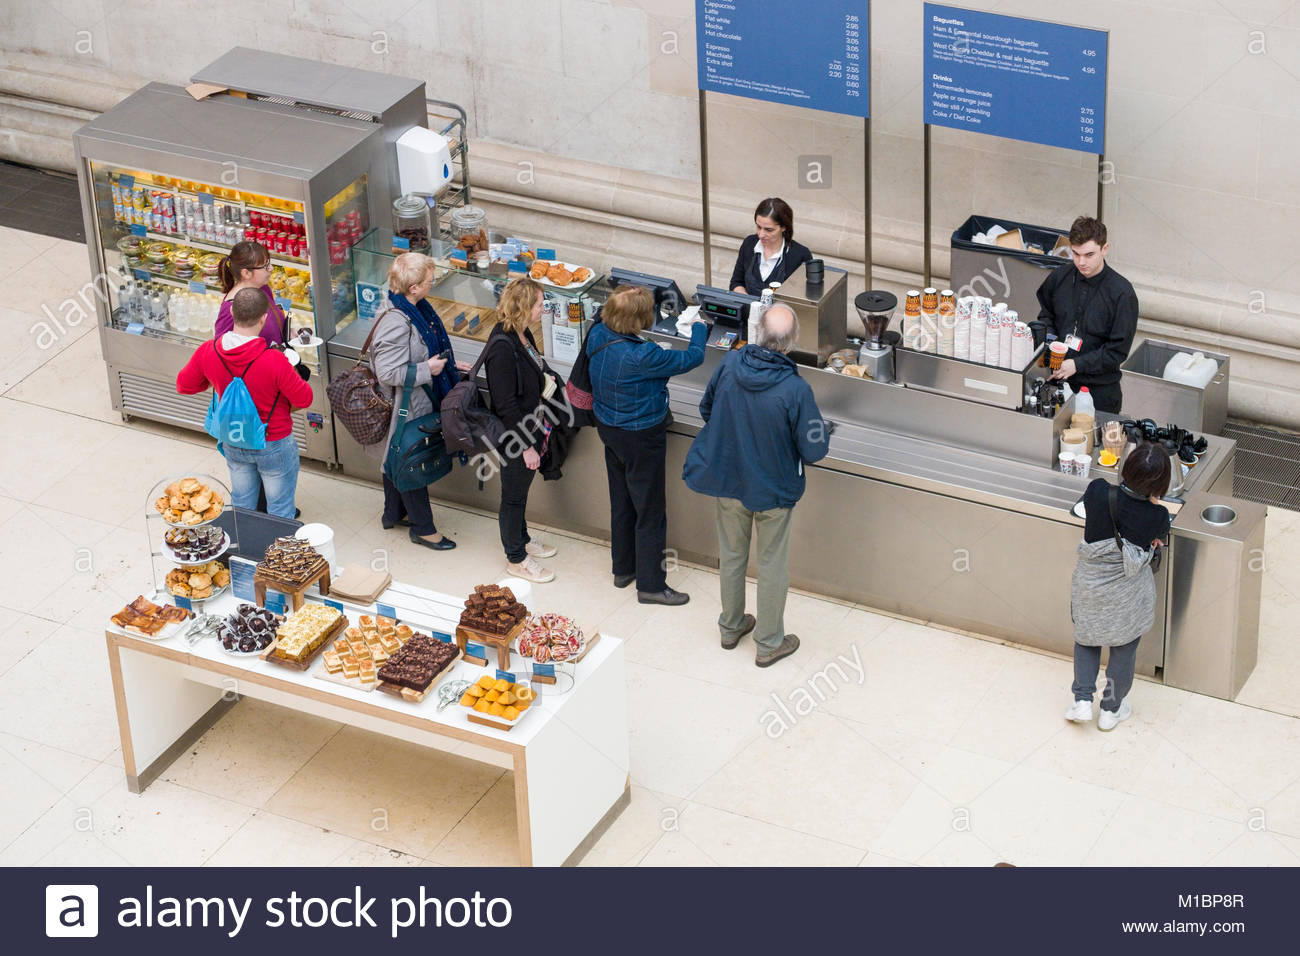 People standing in line to purchase drinks and snacks at the Court Café in the Queen Elizabeth II Great Court covered Stock Photo